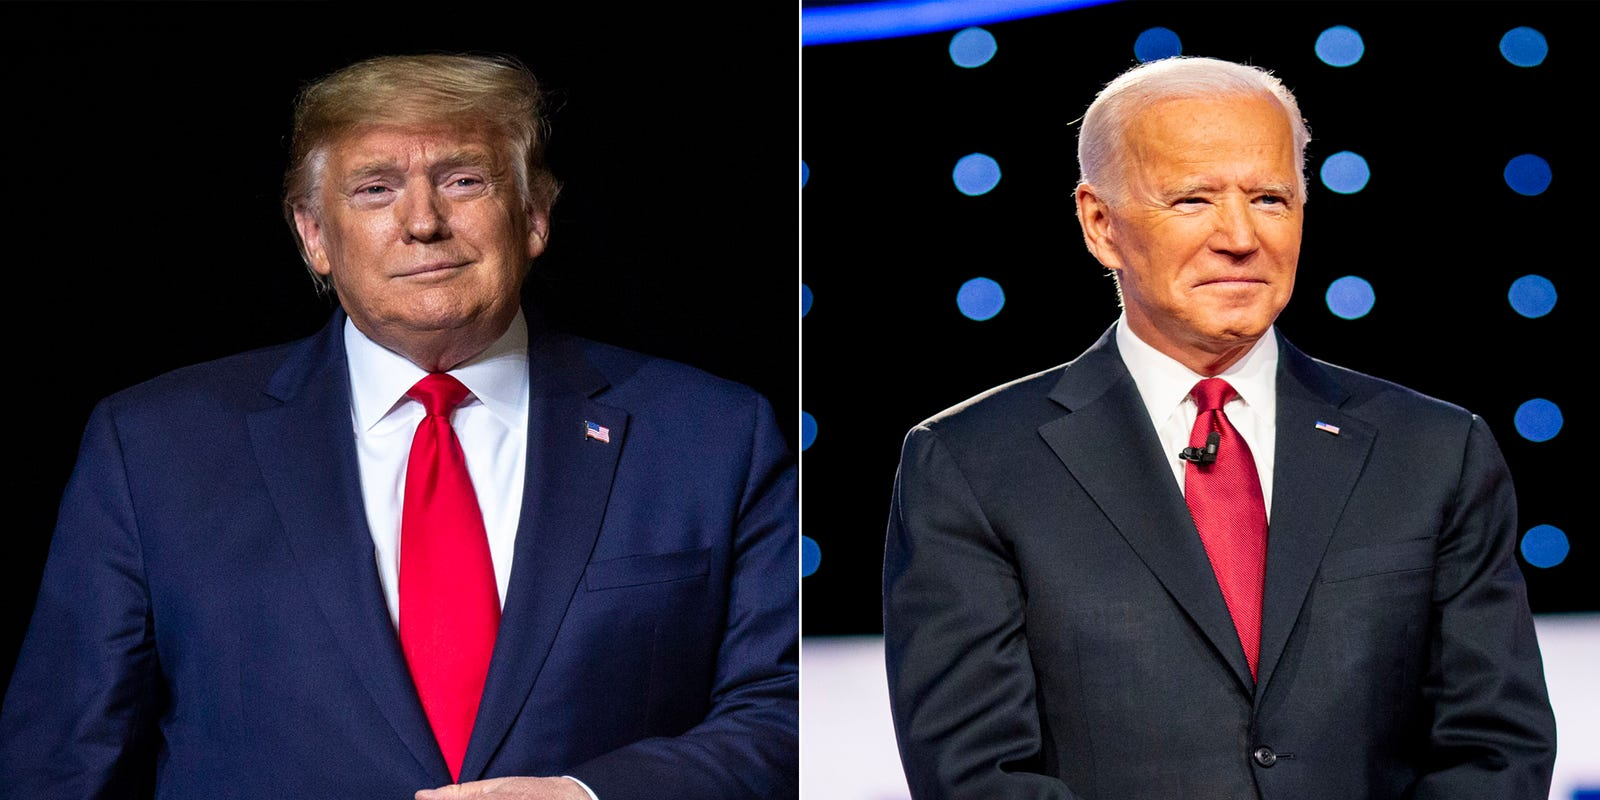 More Michiganders view Biden favorably than Trump, new survey shows